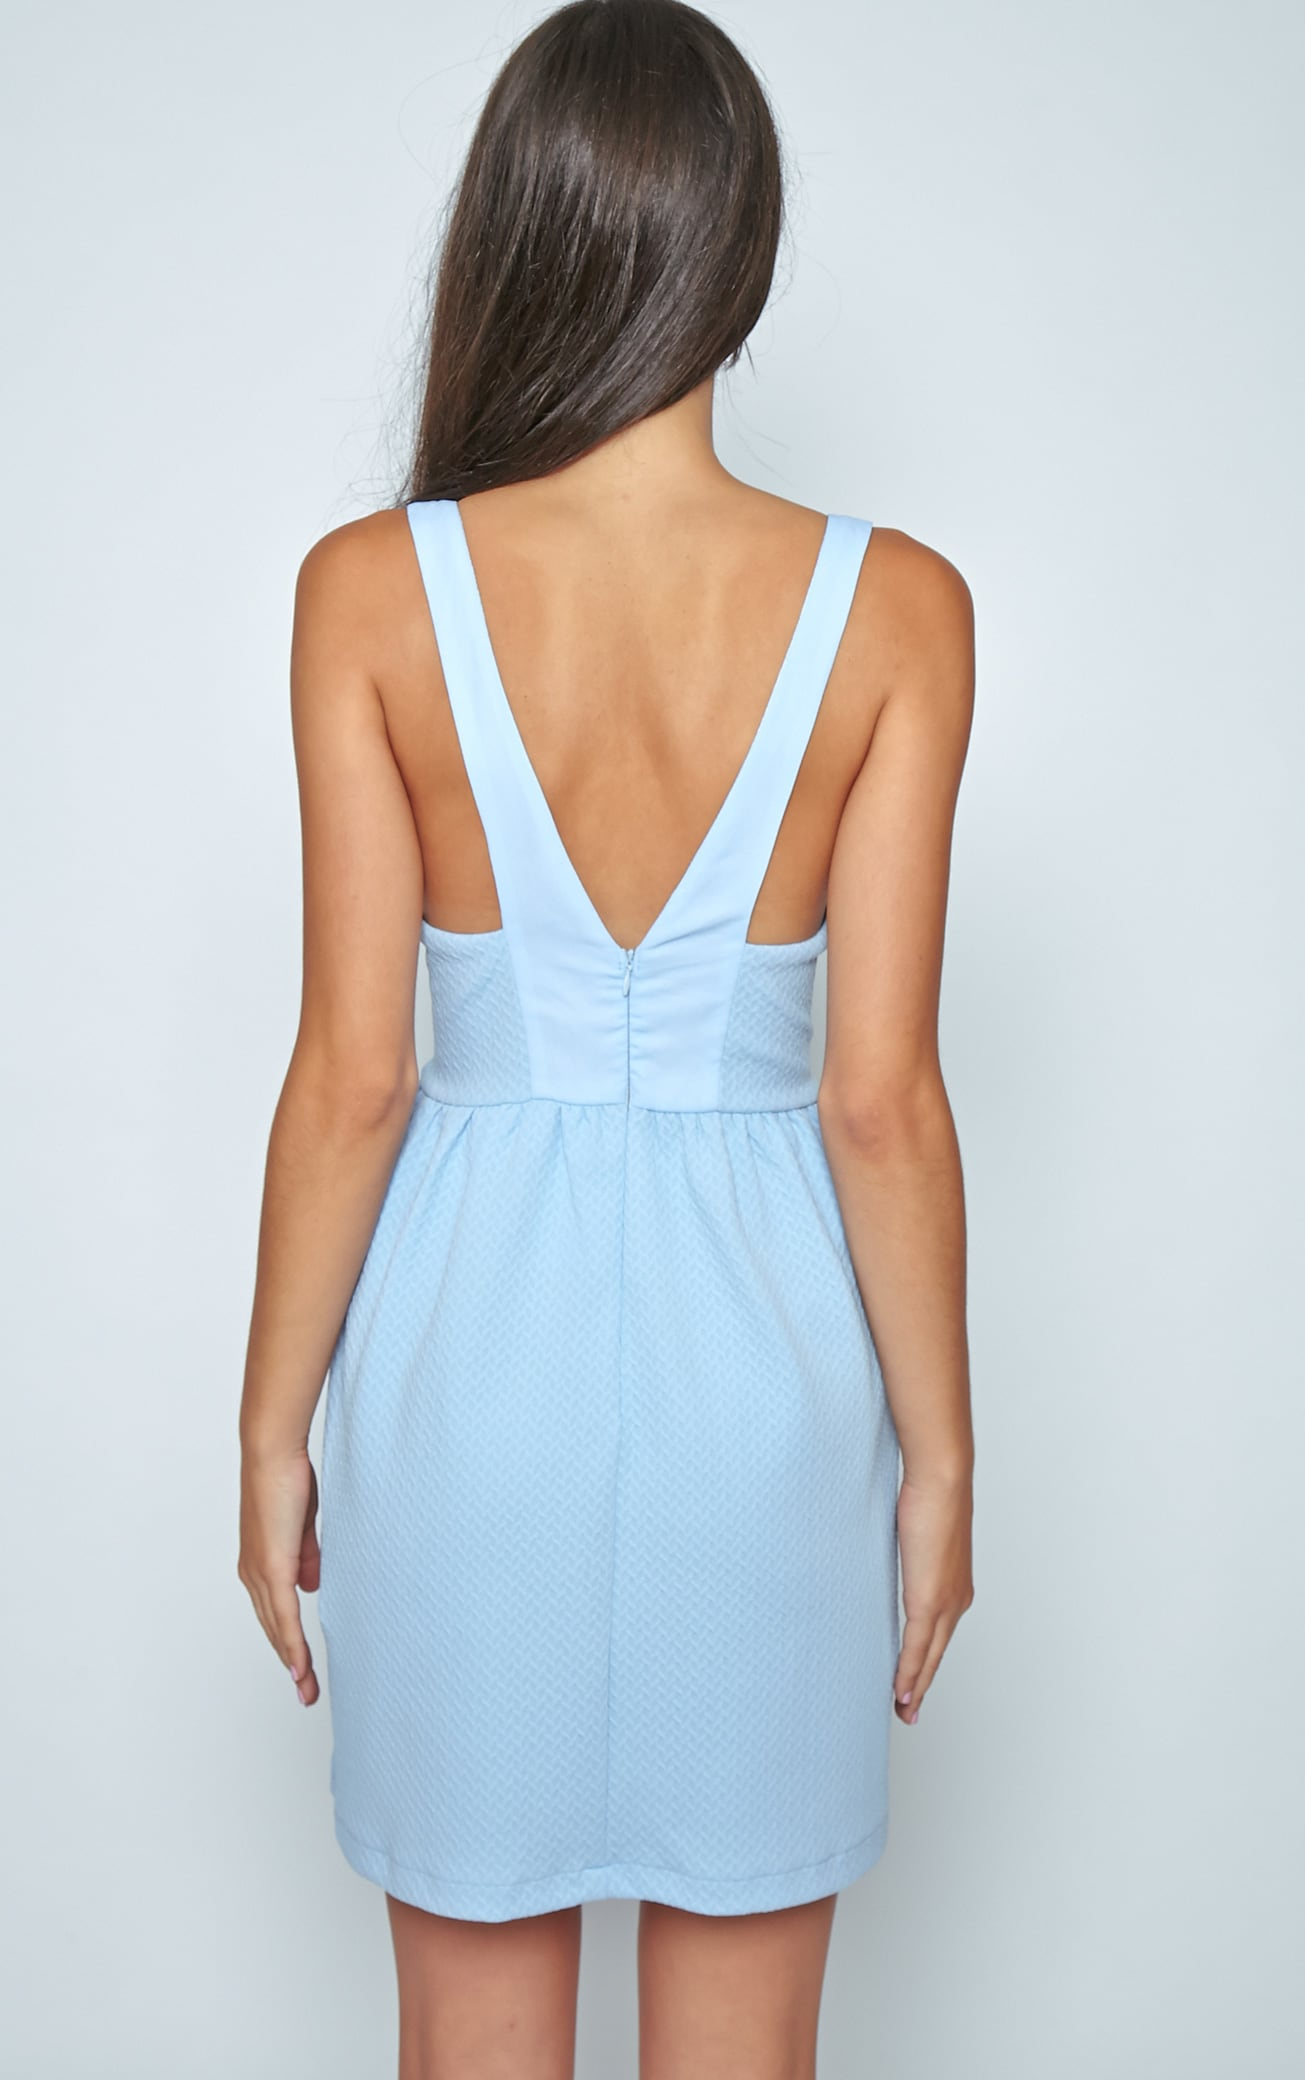 Teri Poweder Blue Textured Cut Out Skater Dress 2